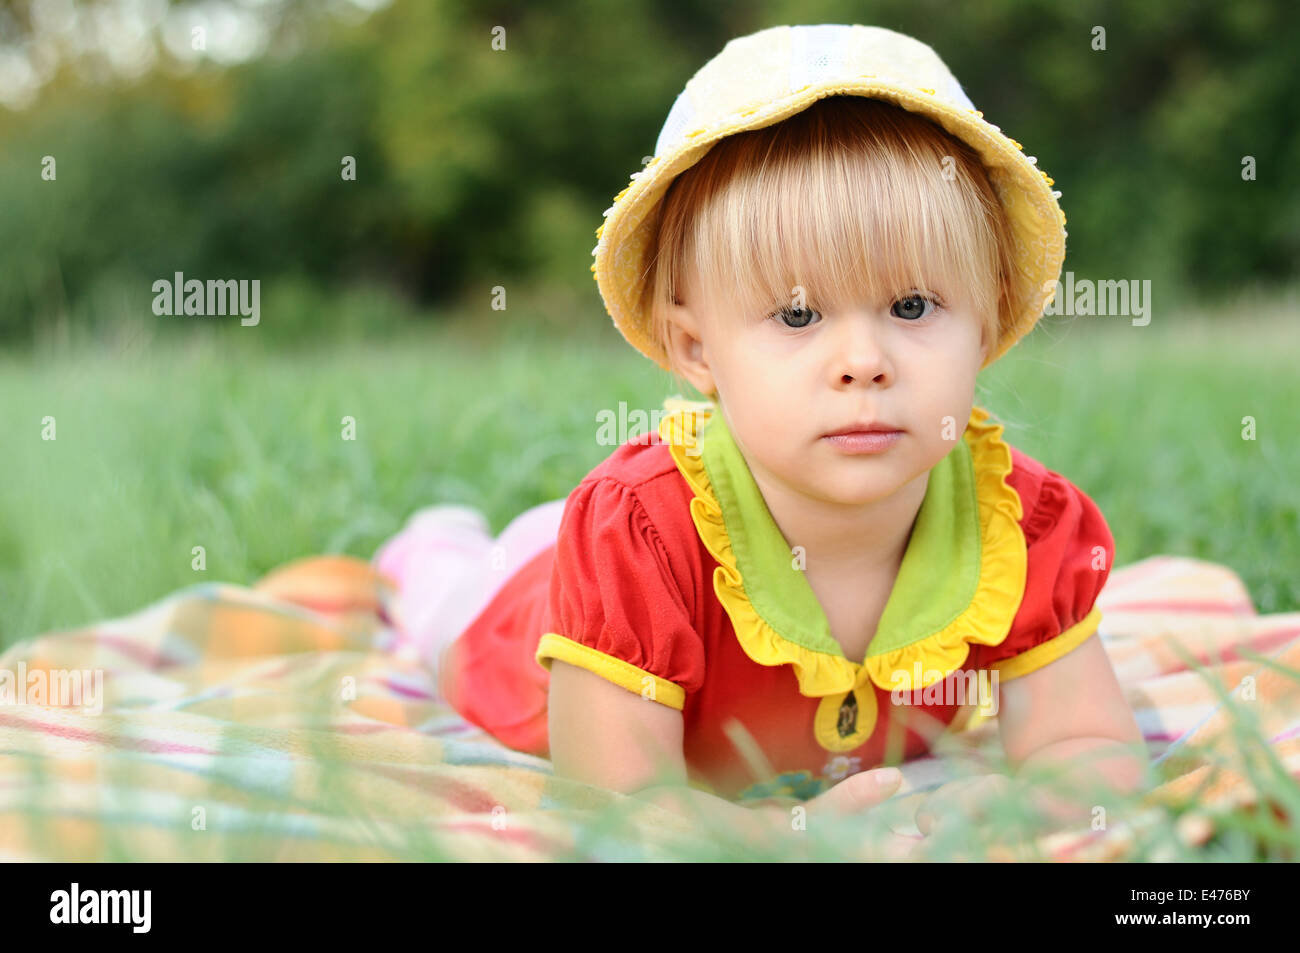 girl child 2 years blonde small one park gardens nature summer day elegant  dress panama hat